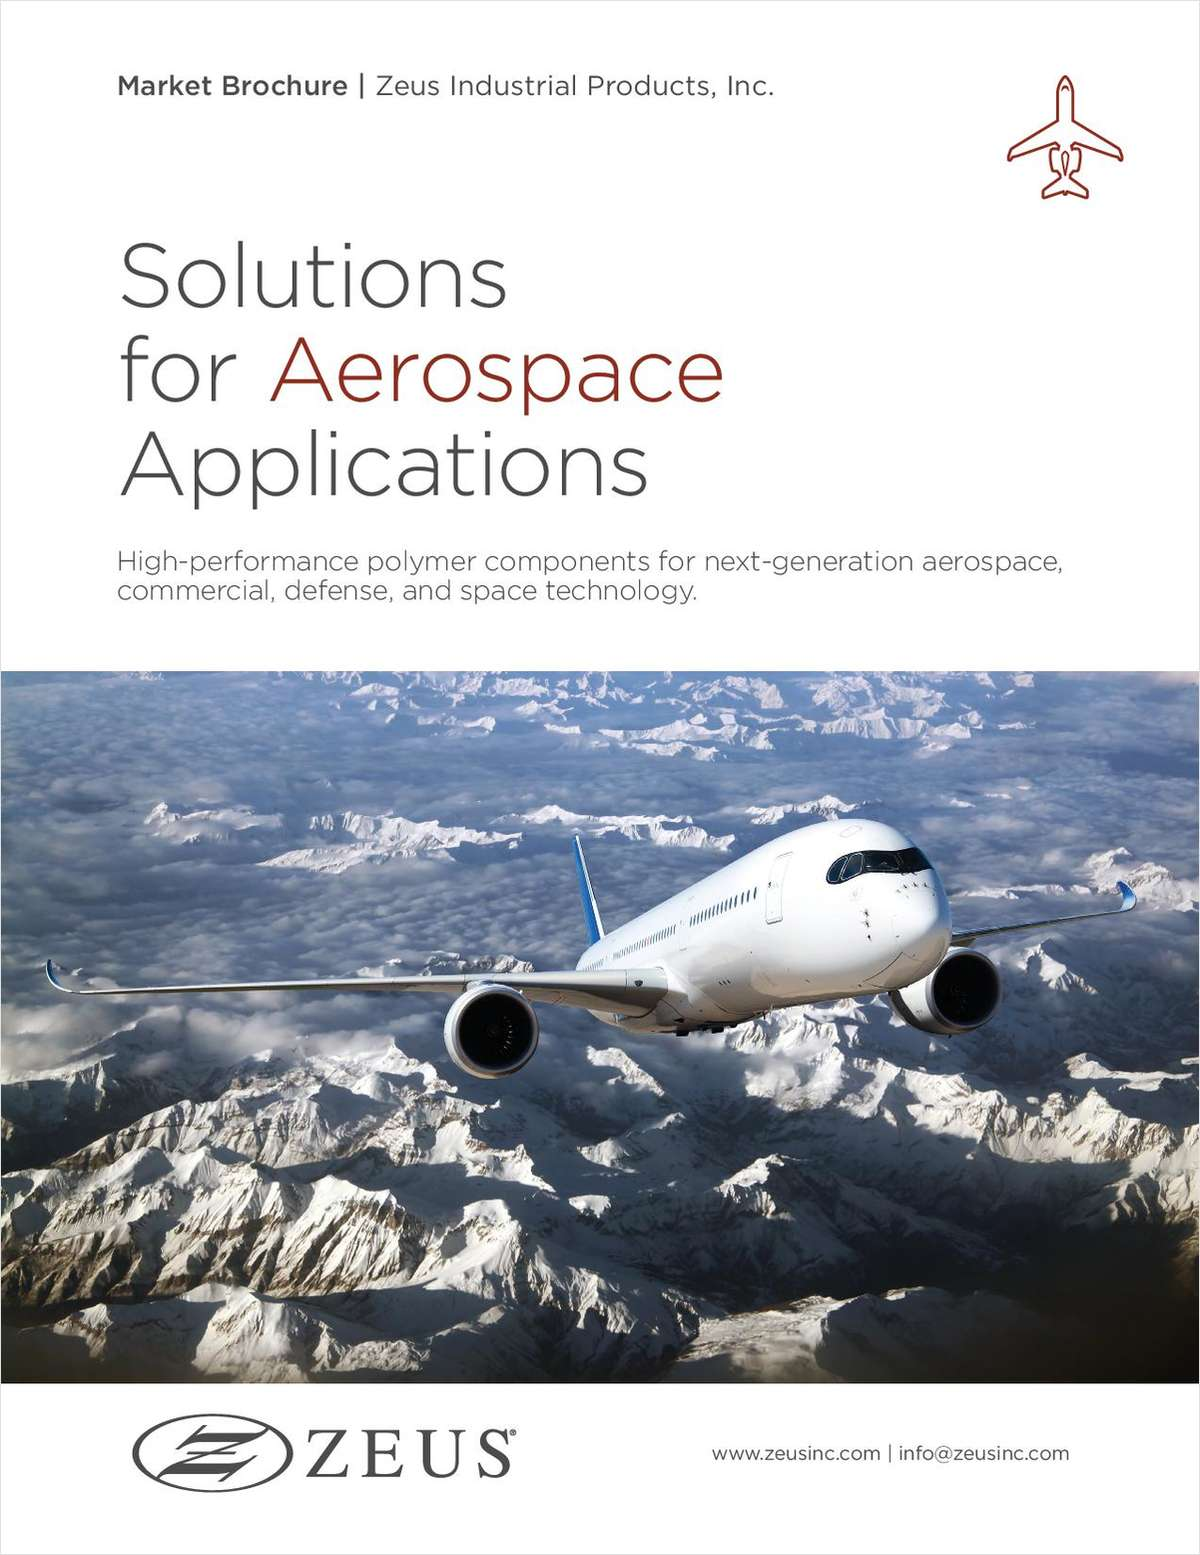 Custom Polymer Solutions for Aerospace, Commercial, Defense, and Space Environments